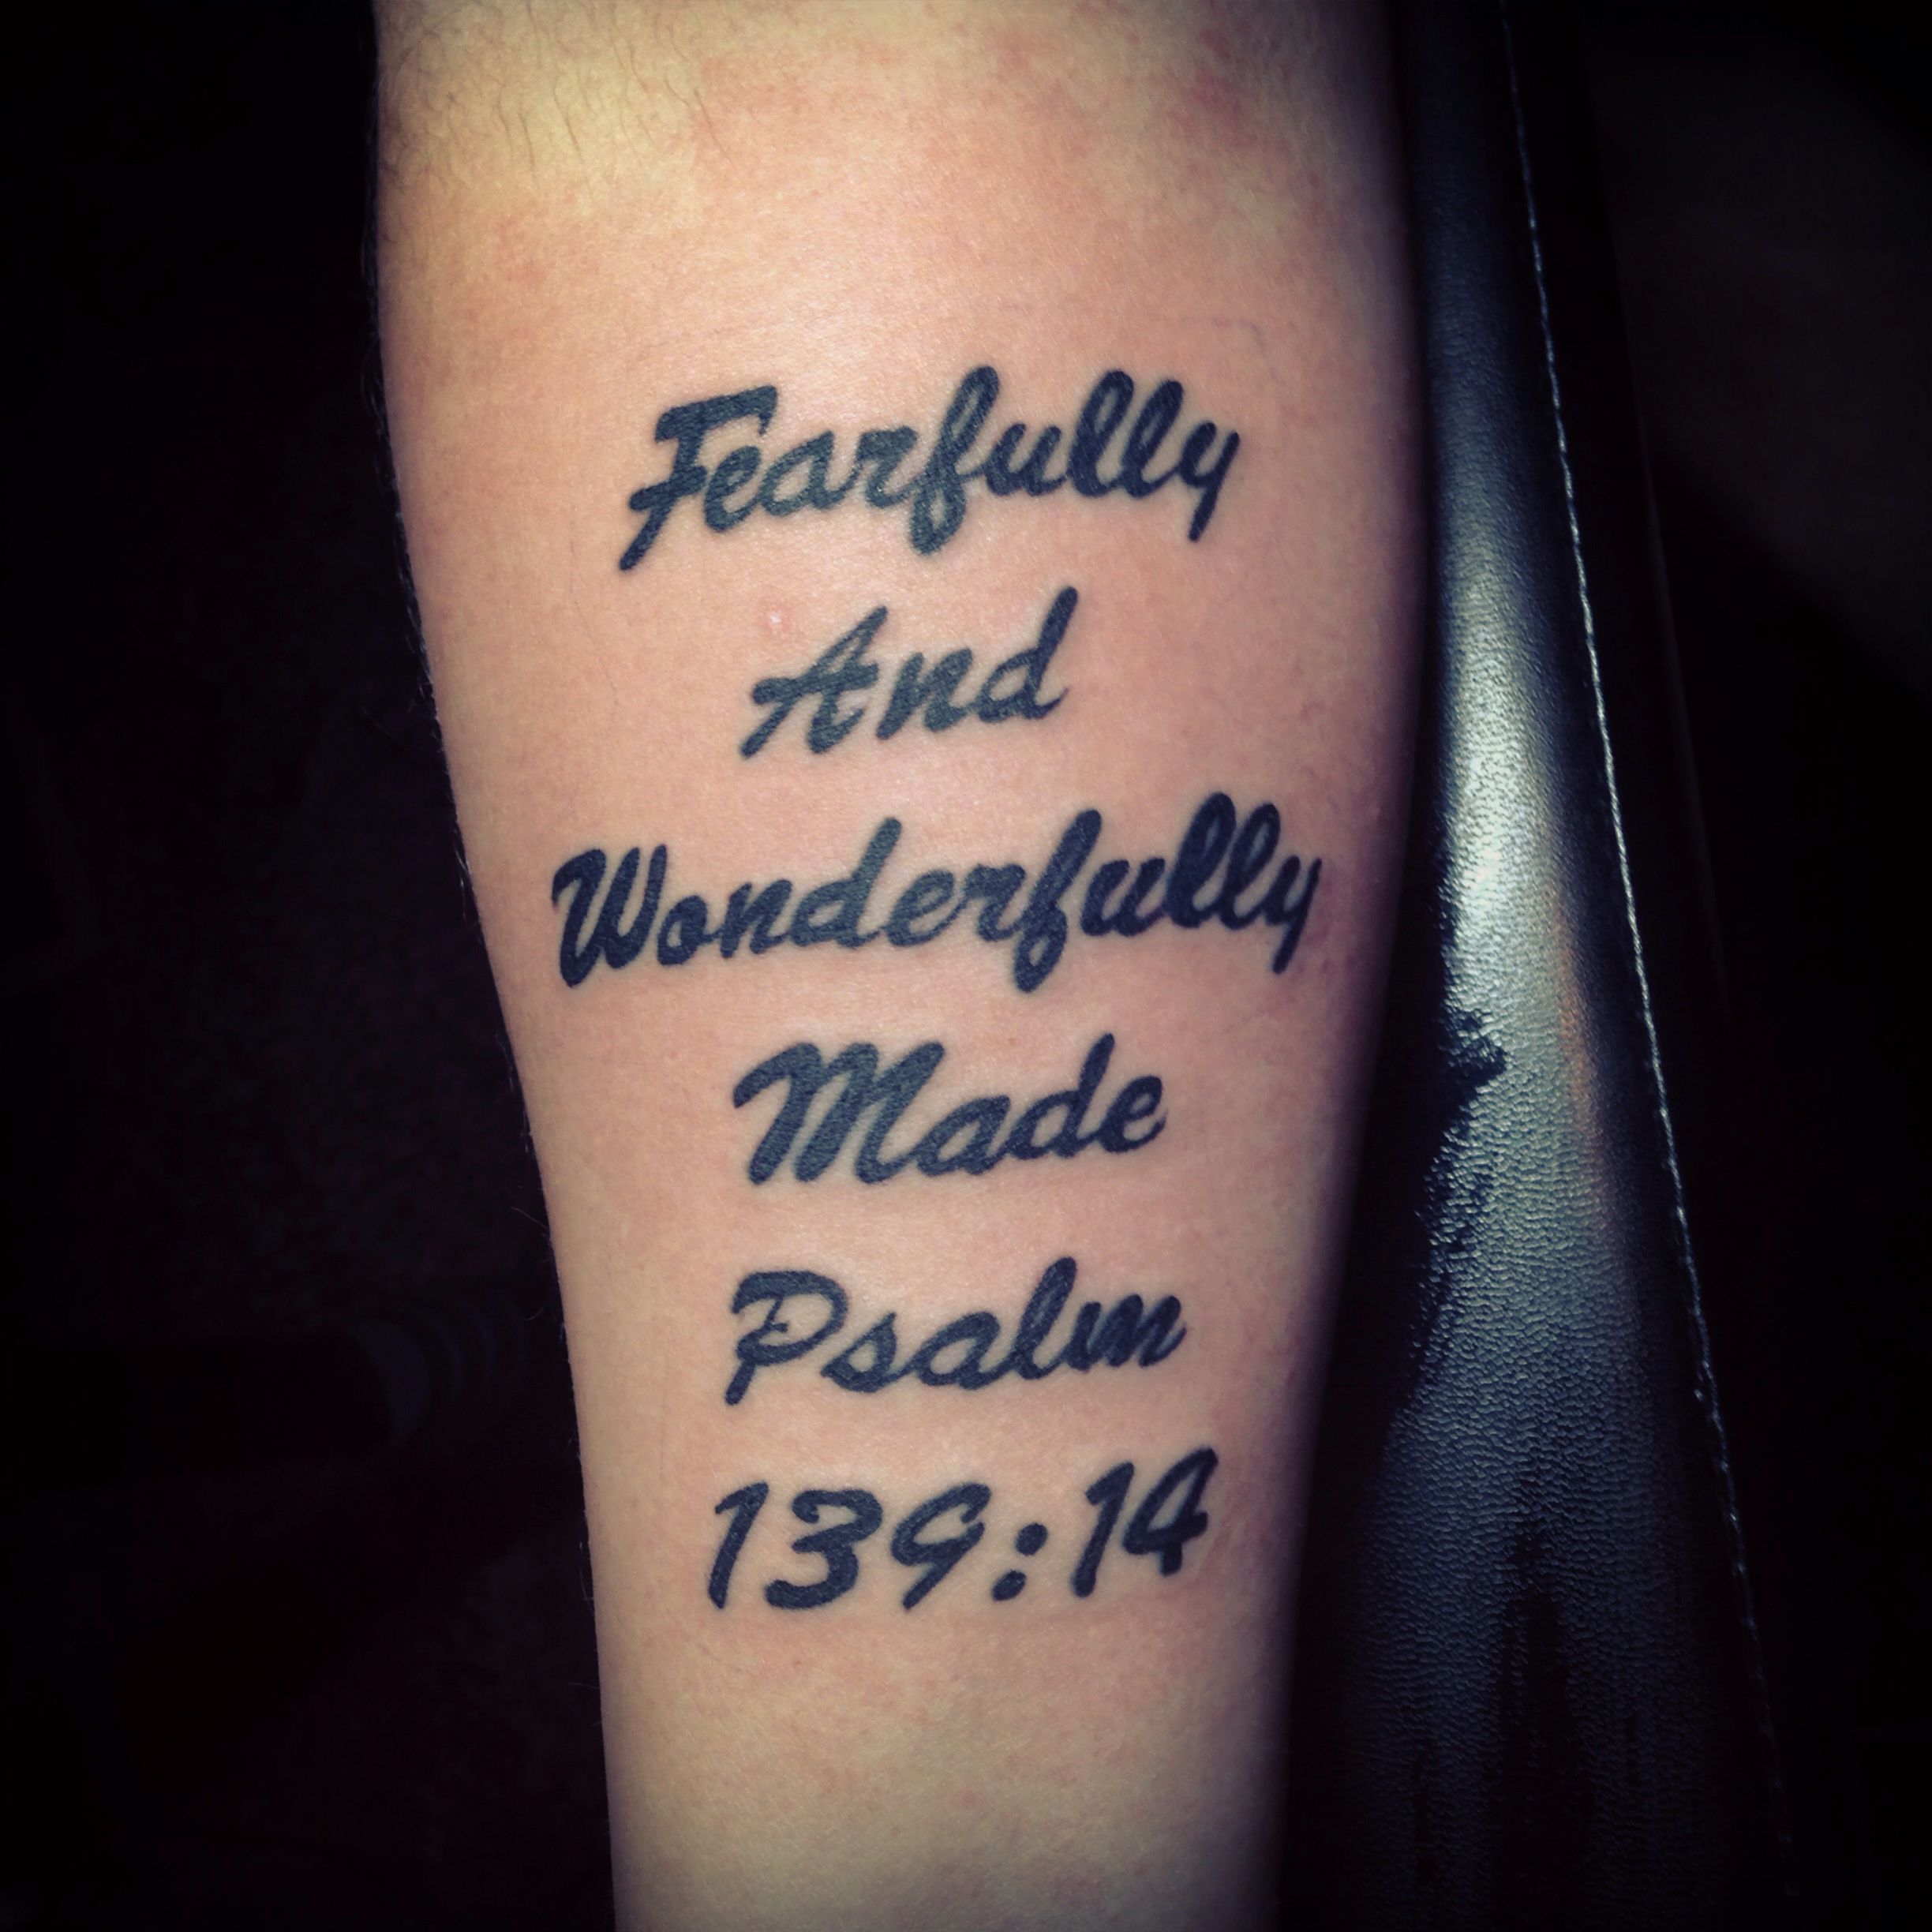 Bible verse tattoo psalm 139:14 | Tattoos | Bible verse ...